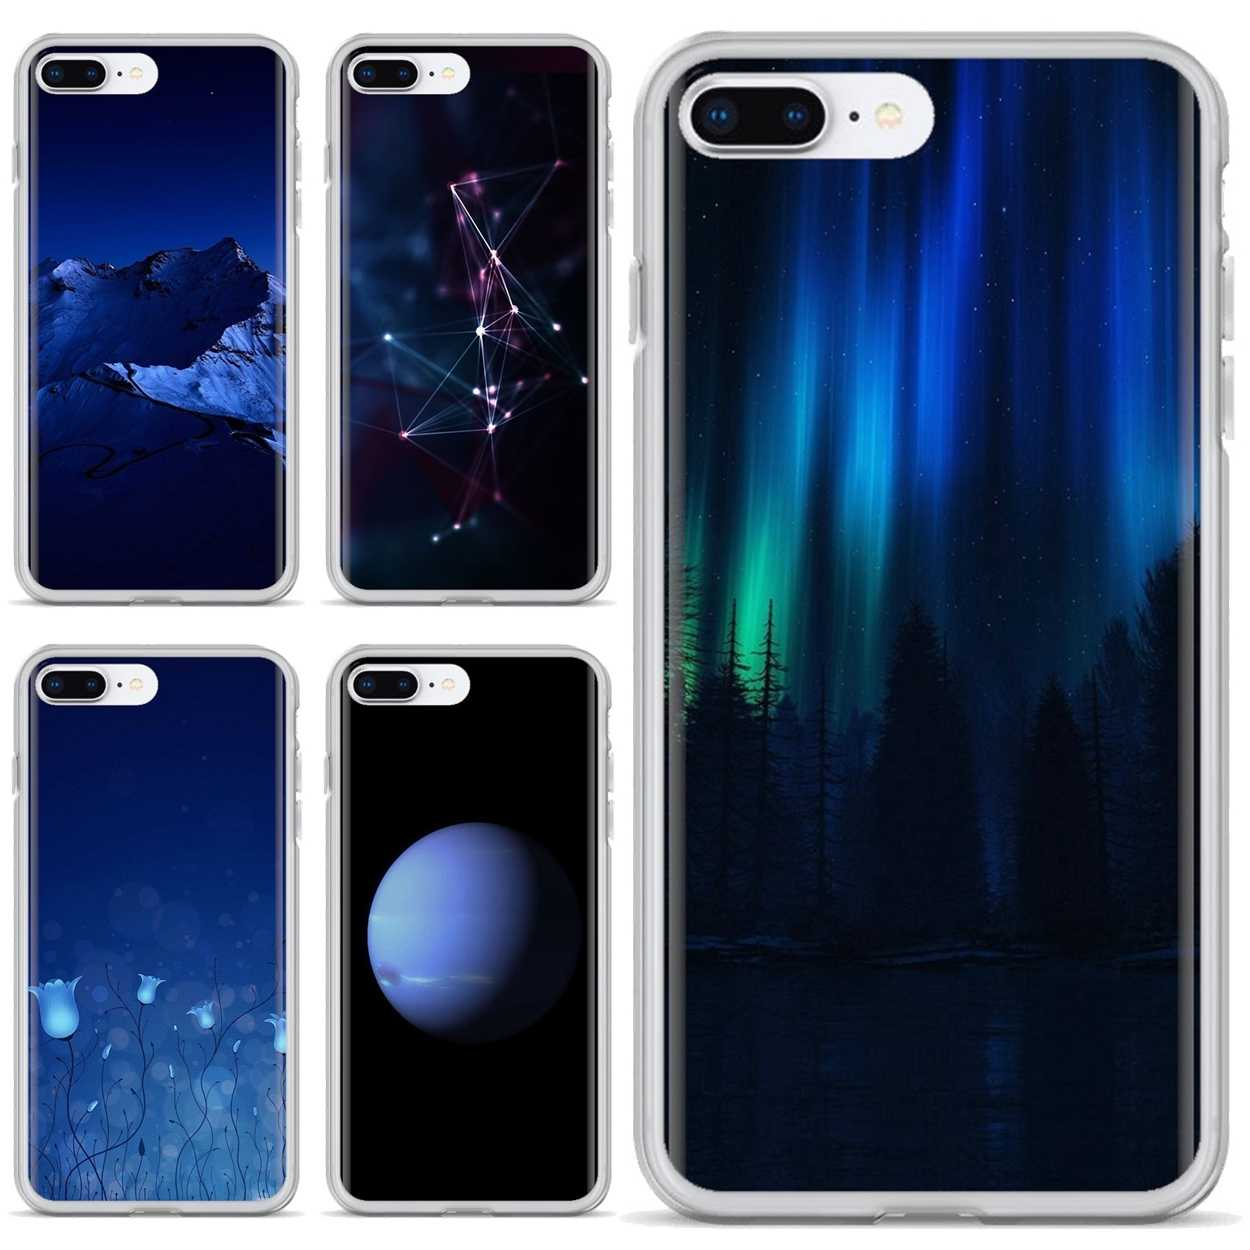 For Samsung Galaxy A3 A5 A7 A9 A8 Star Lite A6 Plus 2018 2015 2016 2017 Soft Skin Cover Dark Blue Wallpapers Fitted Cases Aliexpress